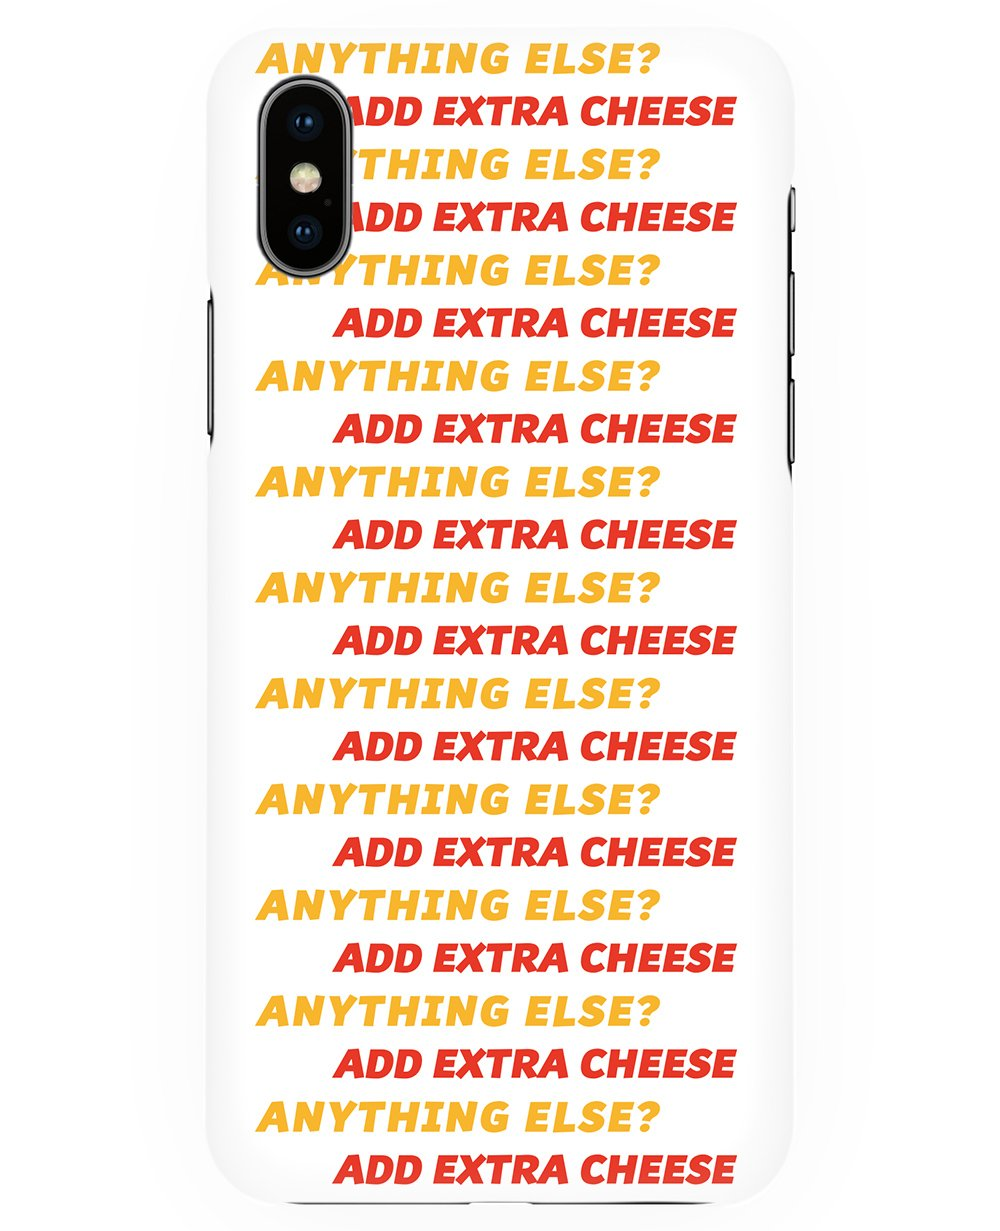 Add Extra Cheese Print Iphone case - Phone cases - FOOD PORN CLUB - BRANMA